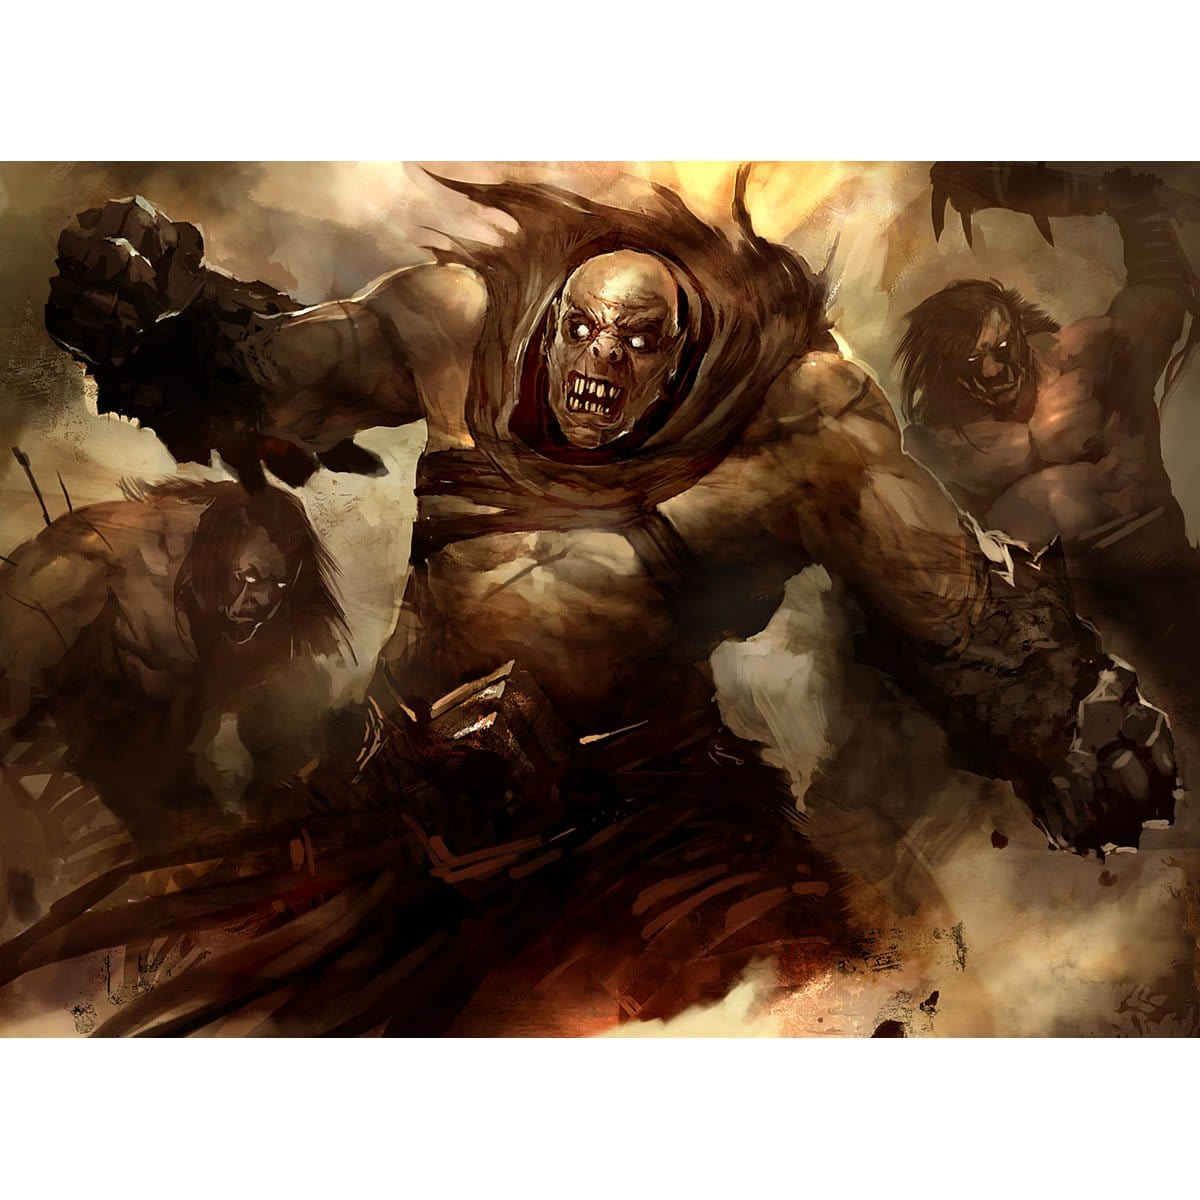 Shatterskull Giant Print - Print - Original Magic Art - Accessories for Magic the Gathering and other card games